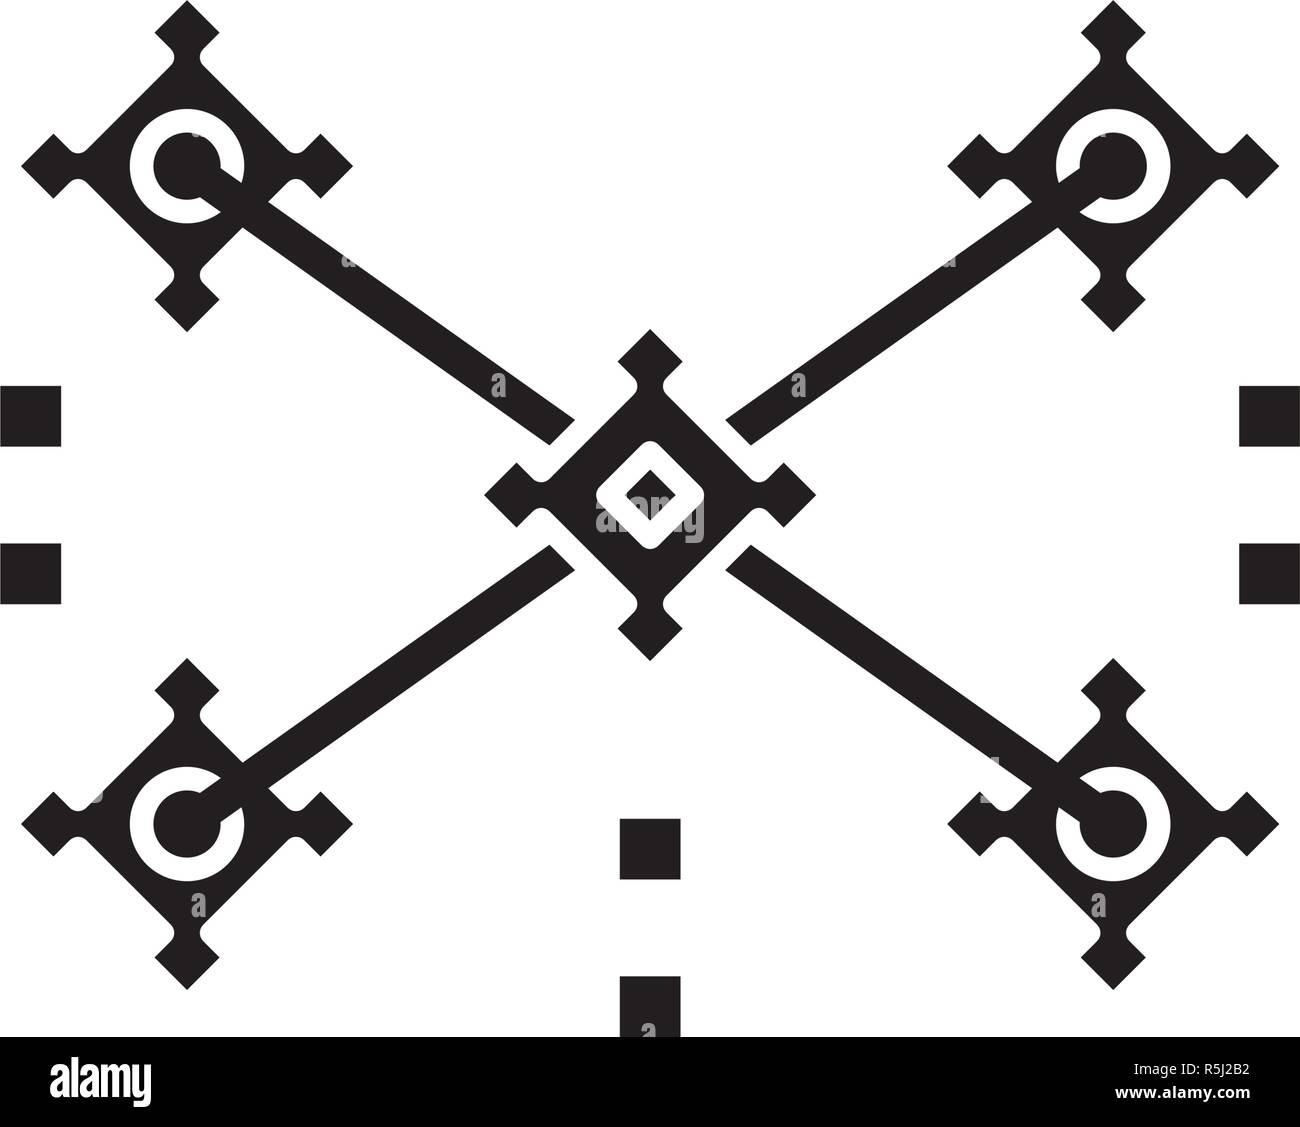 data structure black icon vector sign on isolated background data structure concept symbol illustration stock vector image art alamy https www alamy com data structure black icon vector sign on isolated background data structure concept symbol illustration image227205078 html